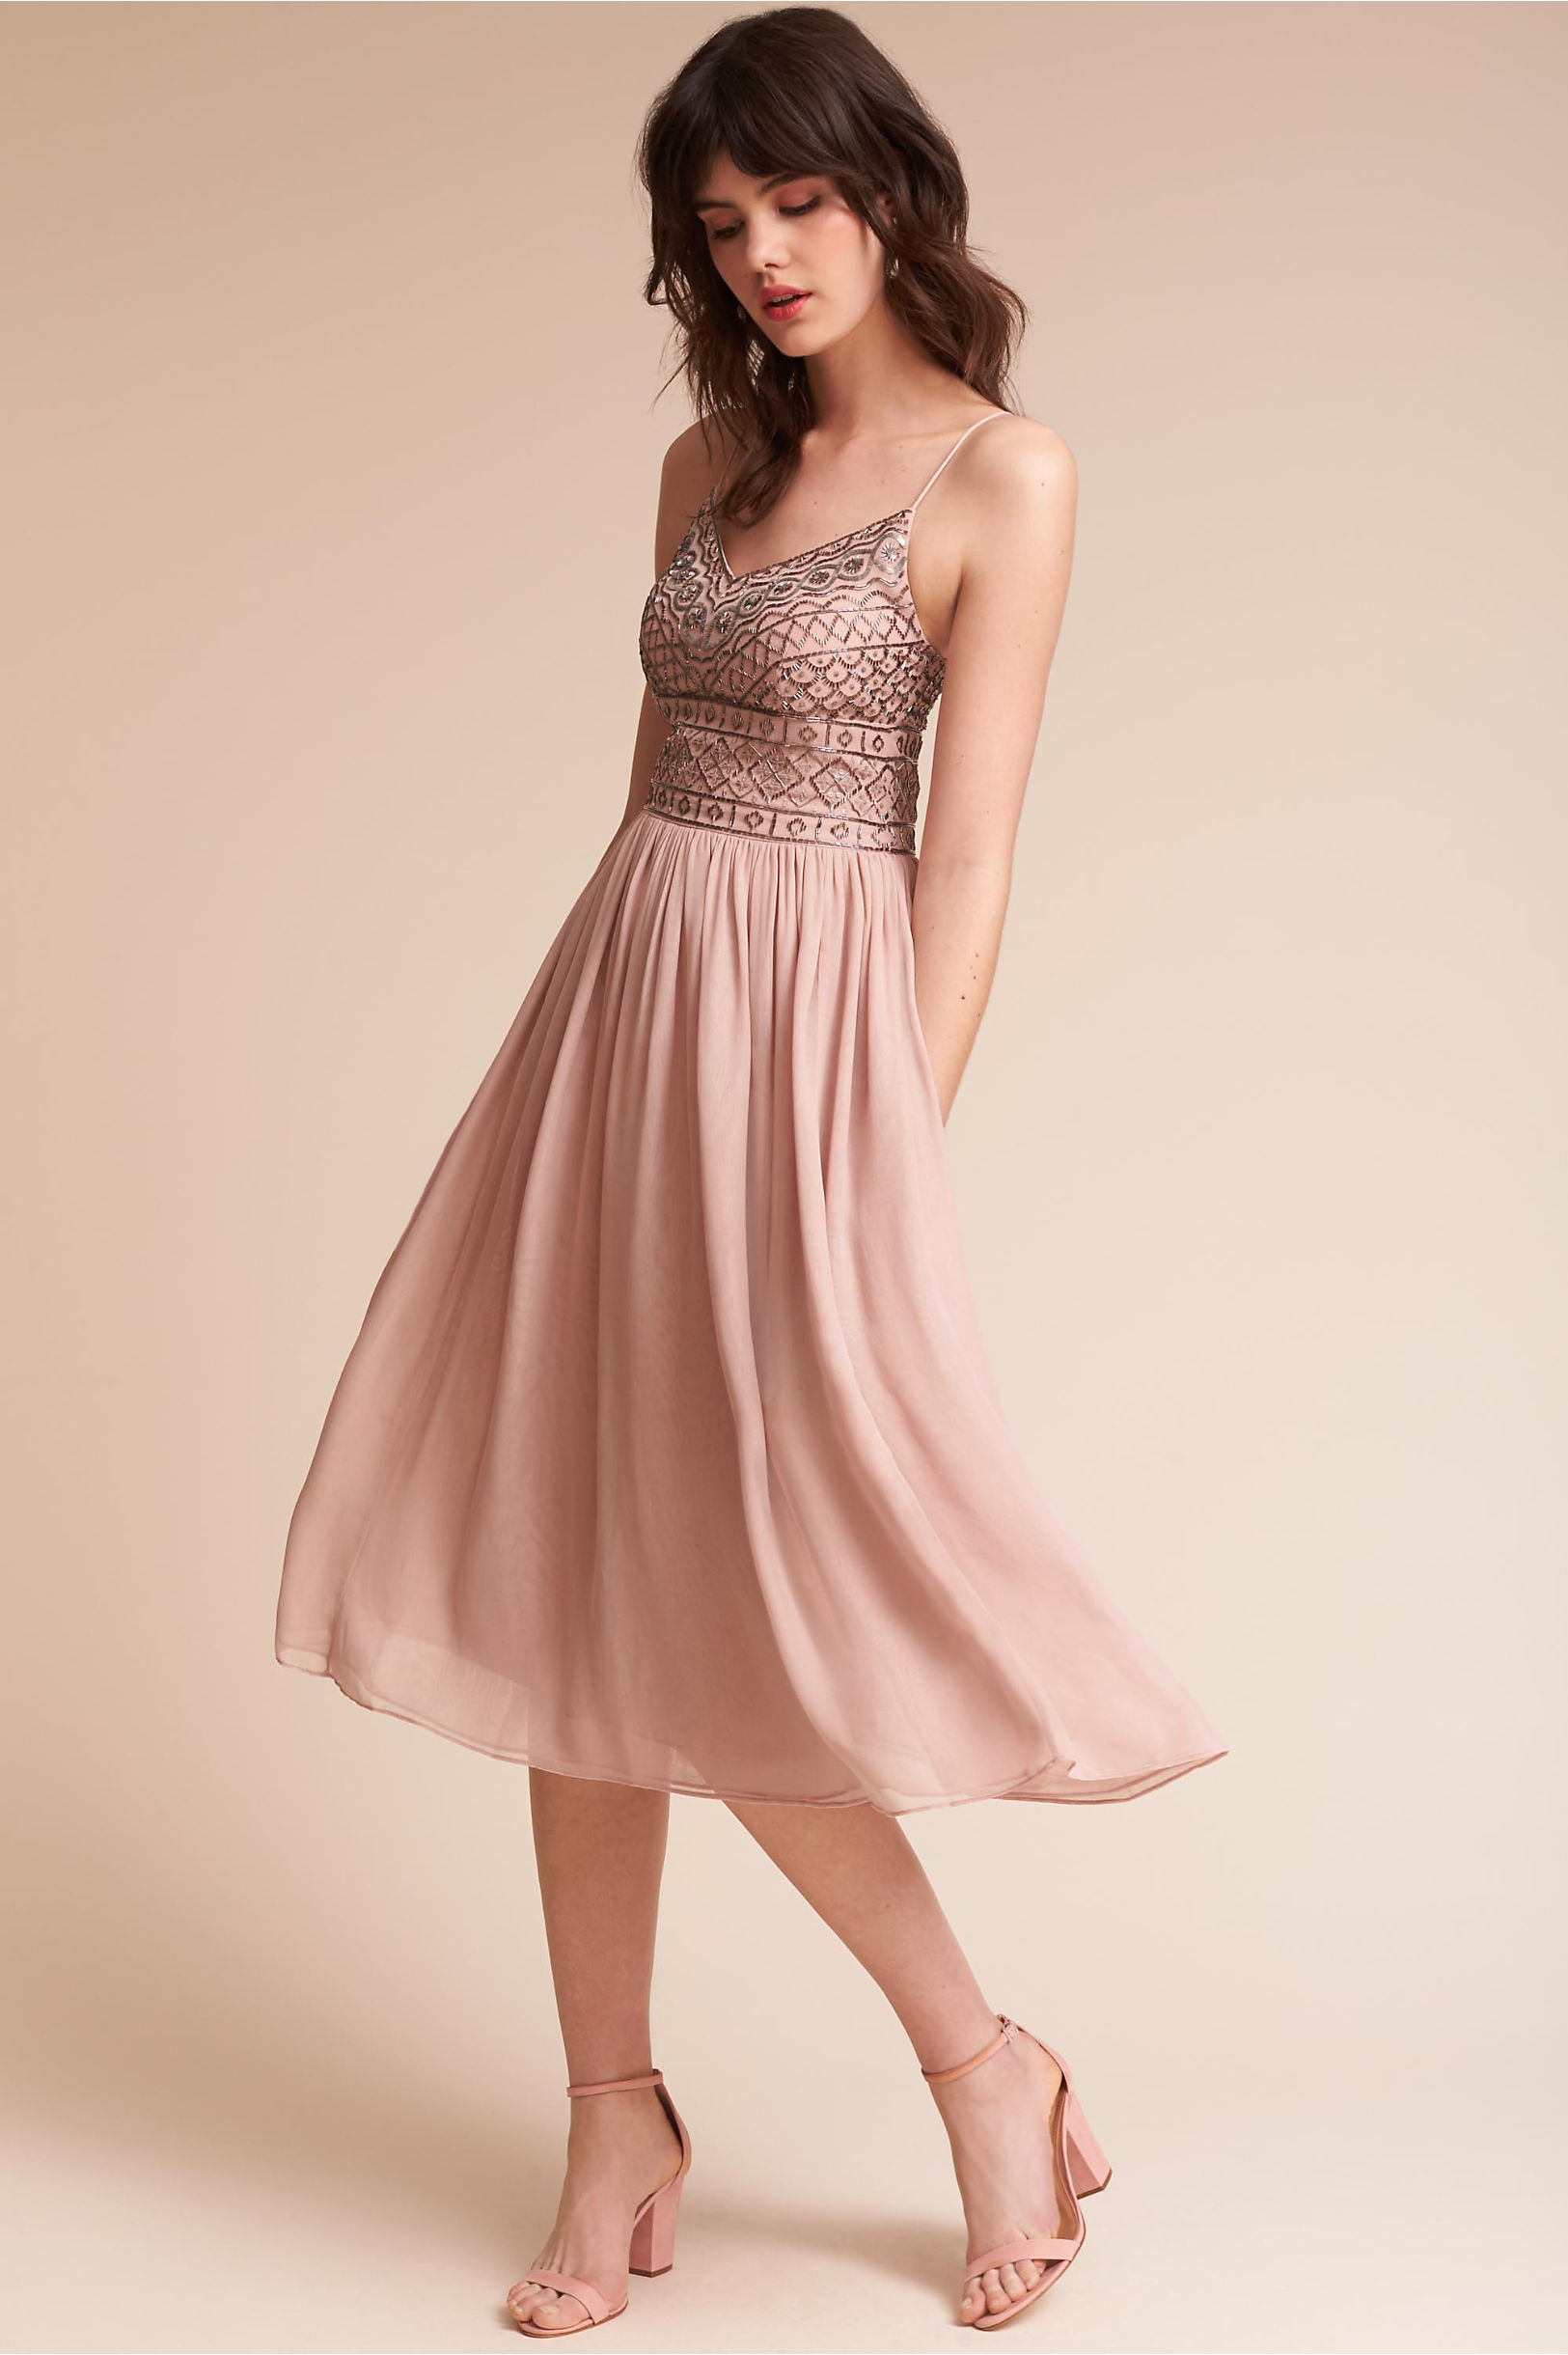 Bridesmaid Dresses & Gowns | Custom, Vintage Inspired | BHLDN